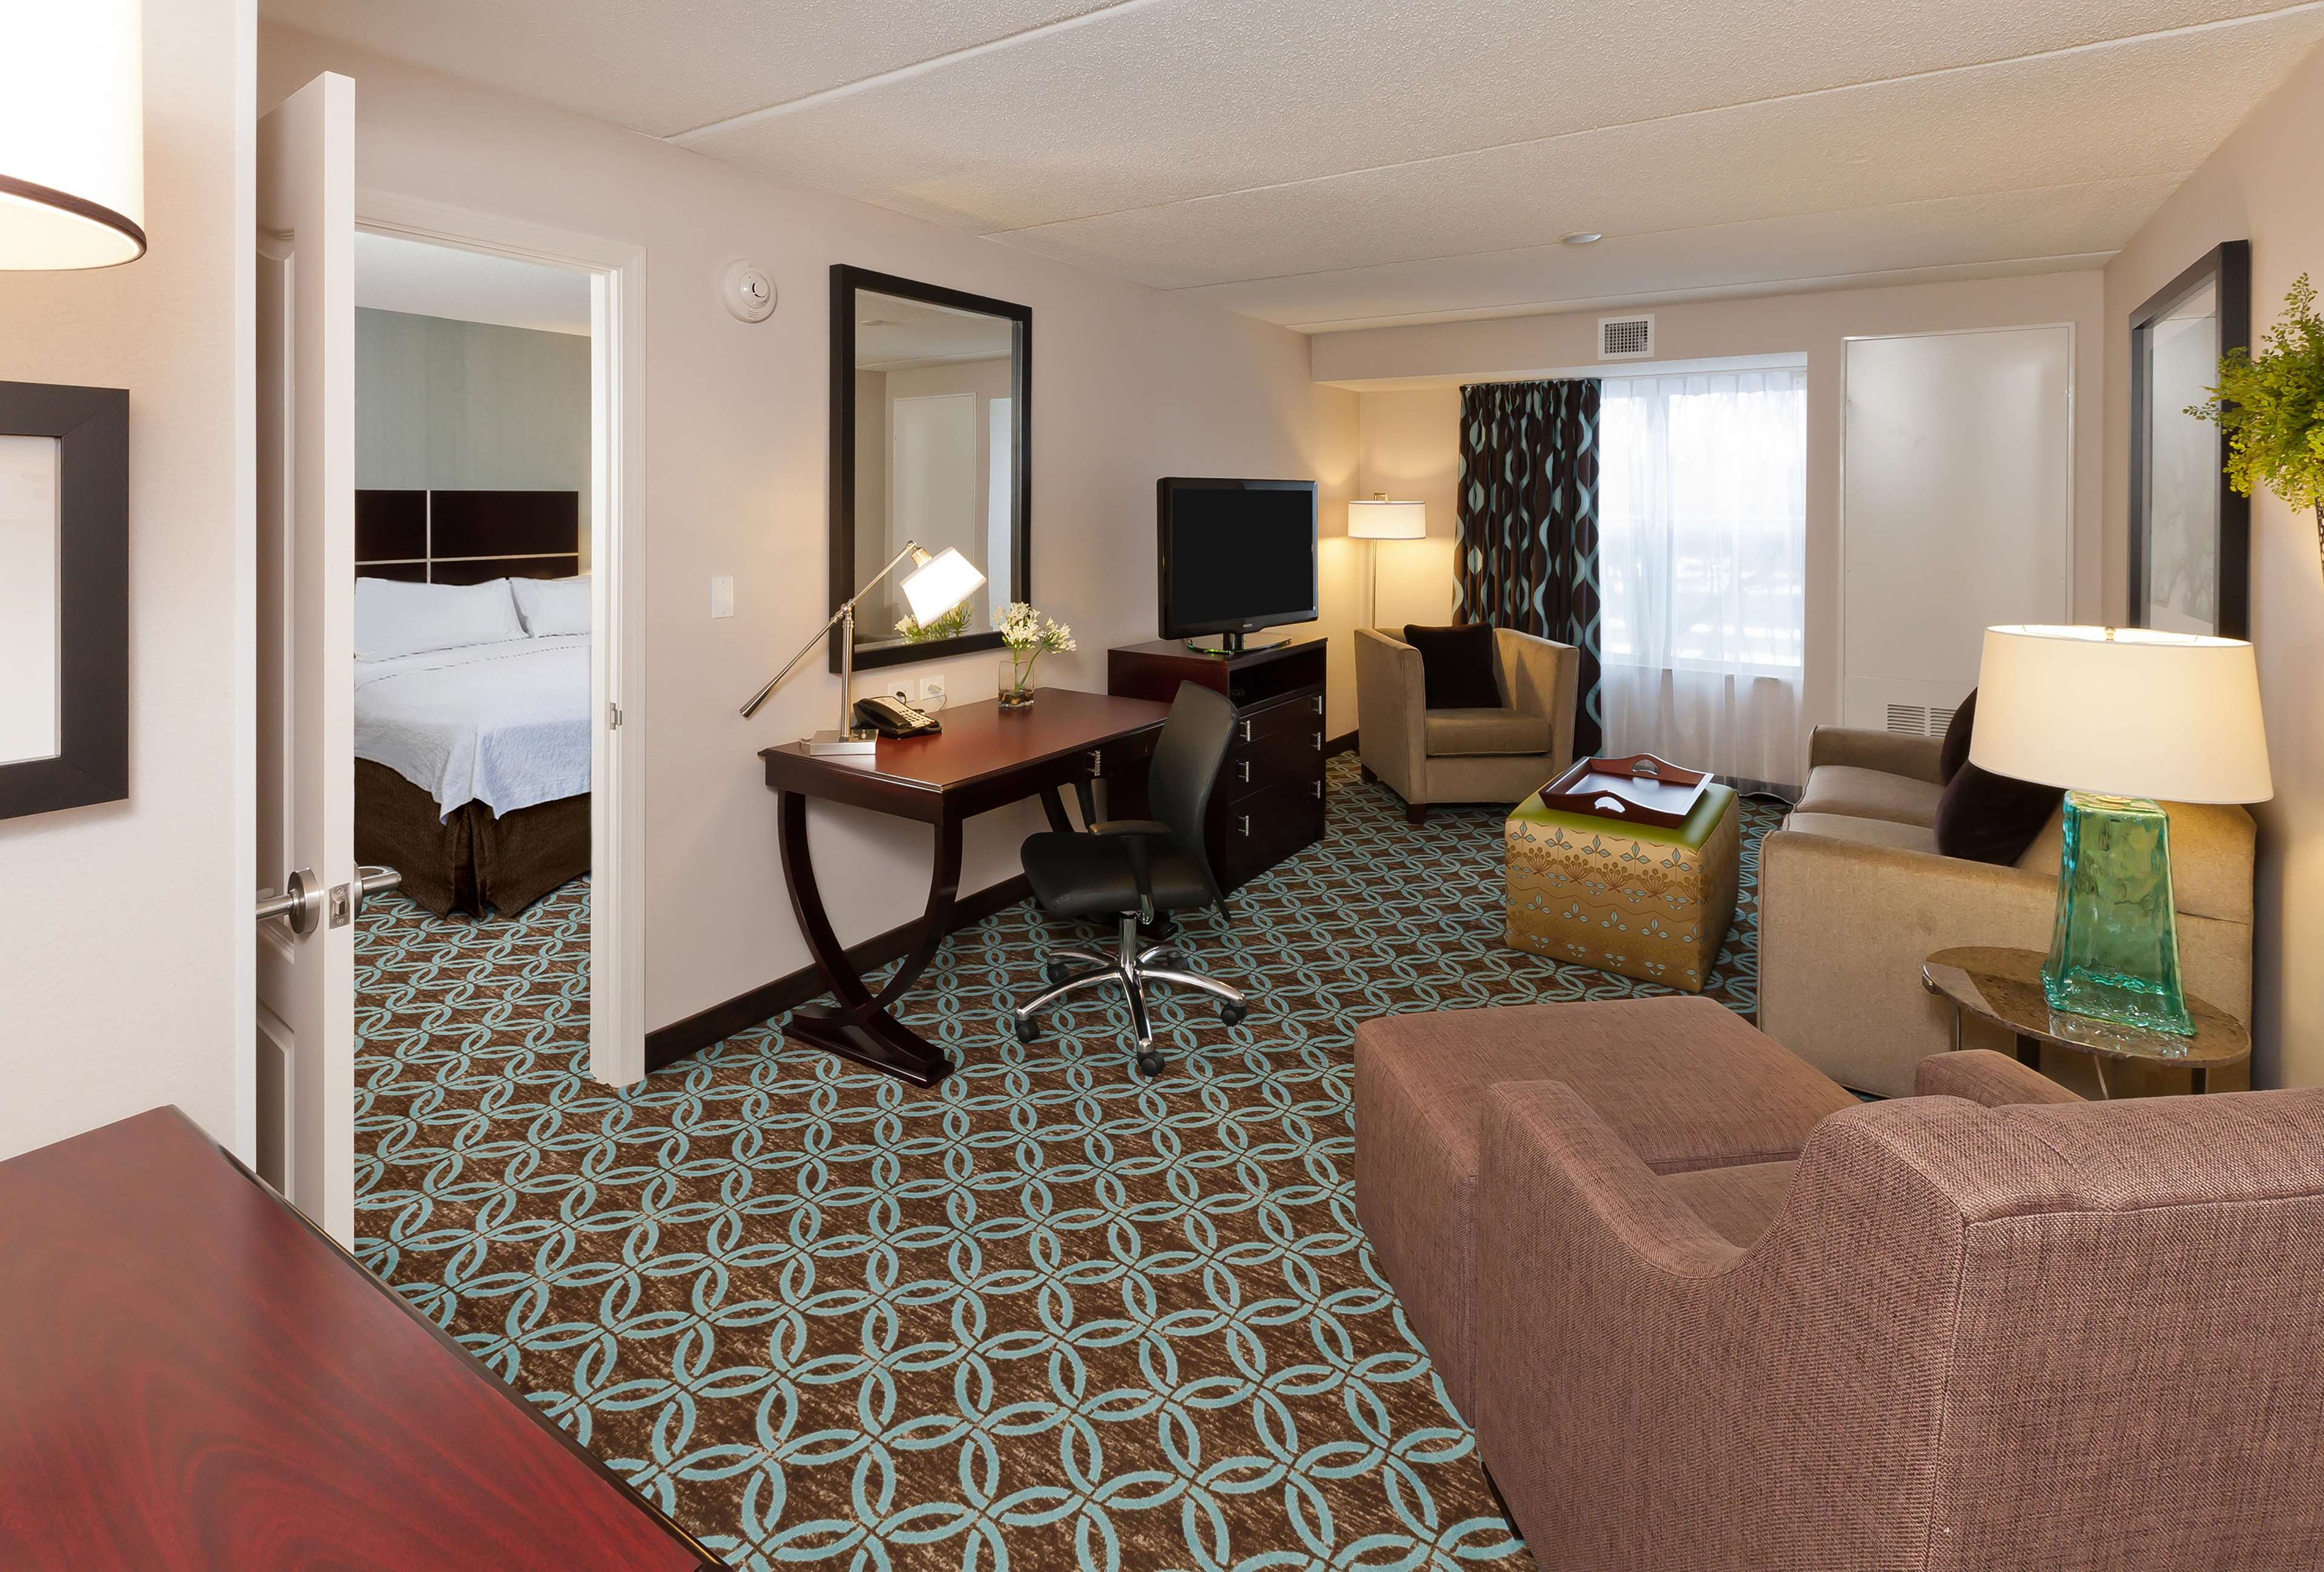 Homewood Suites by Hilton Boston/Canton, MA image 17